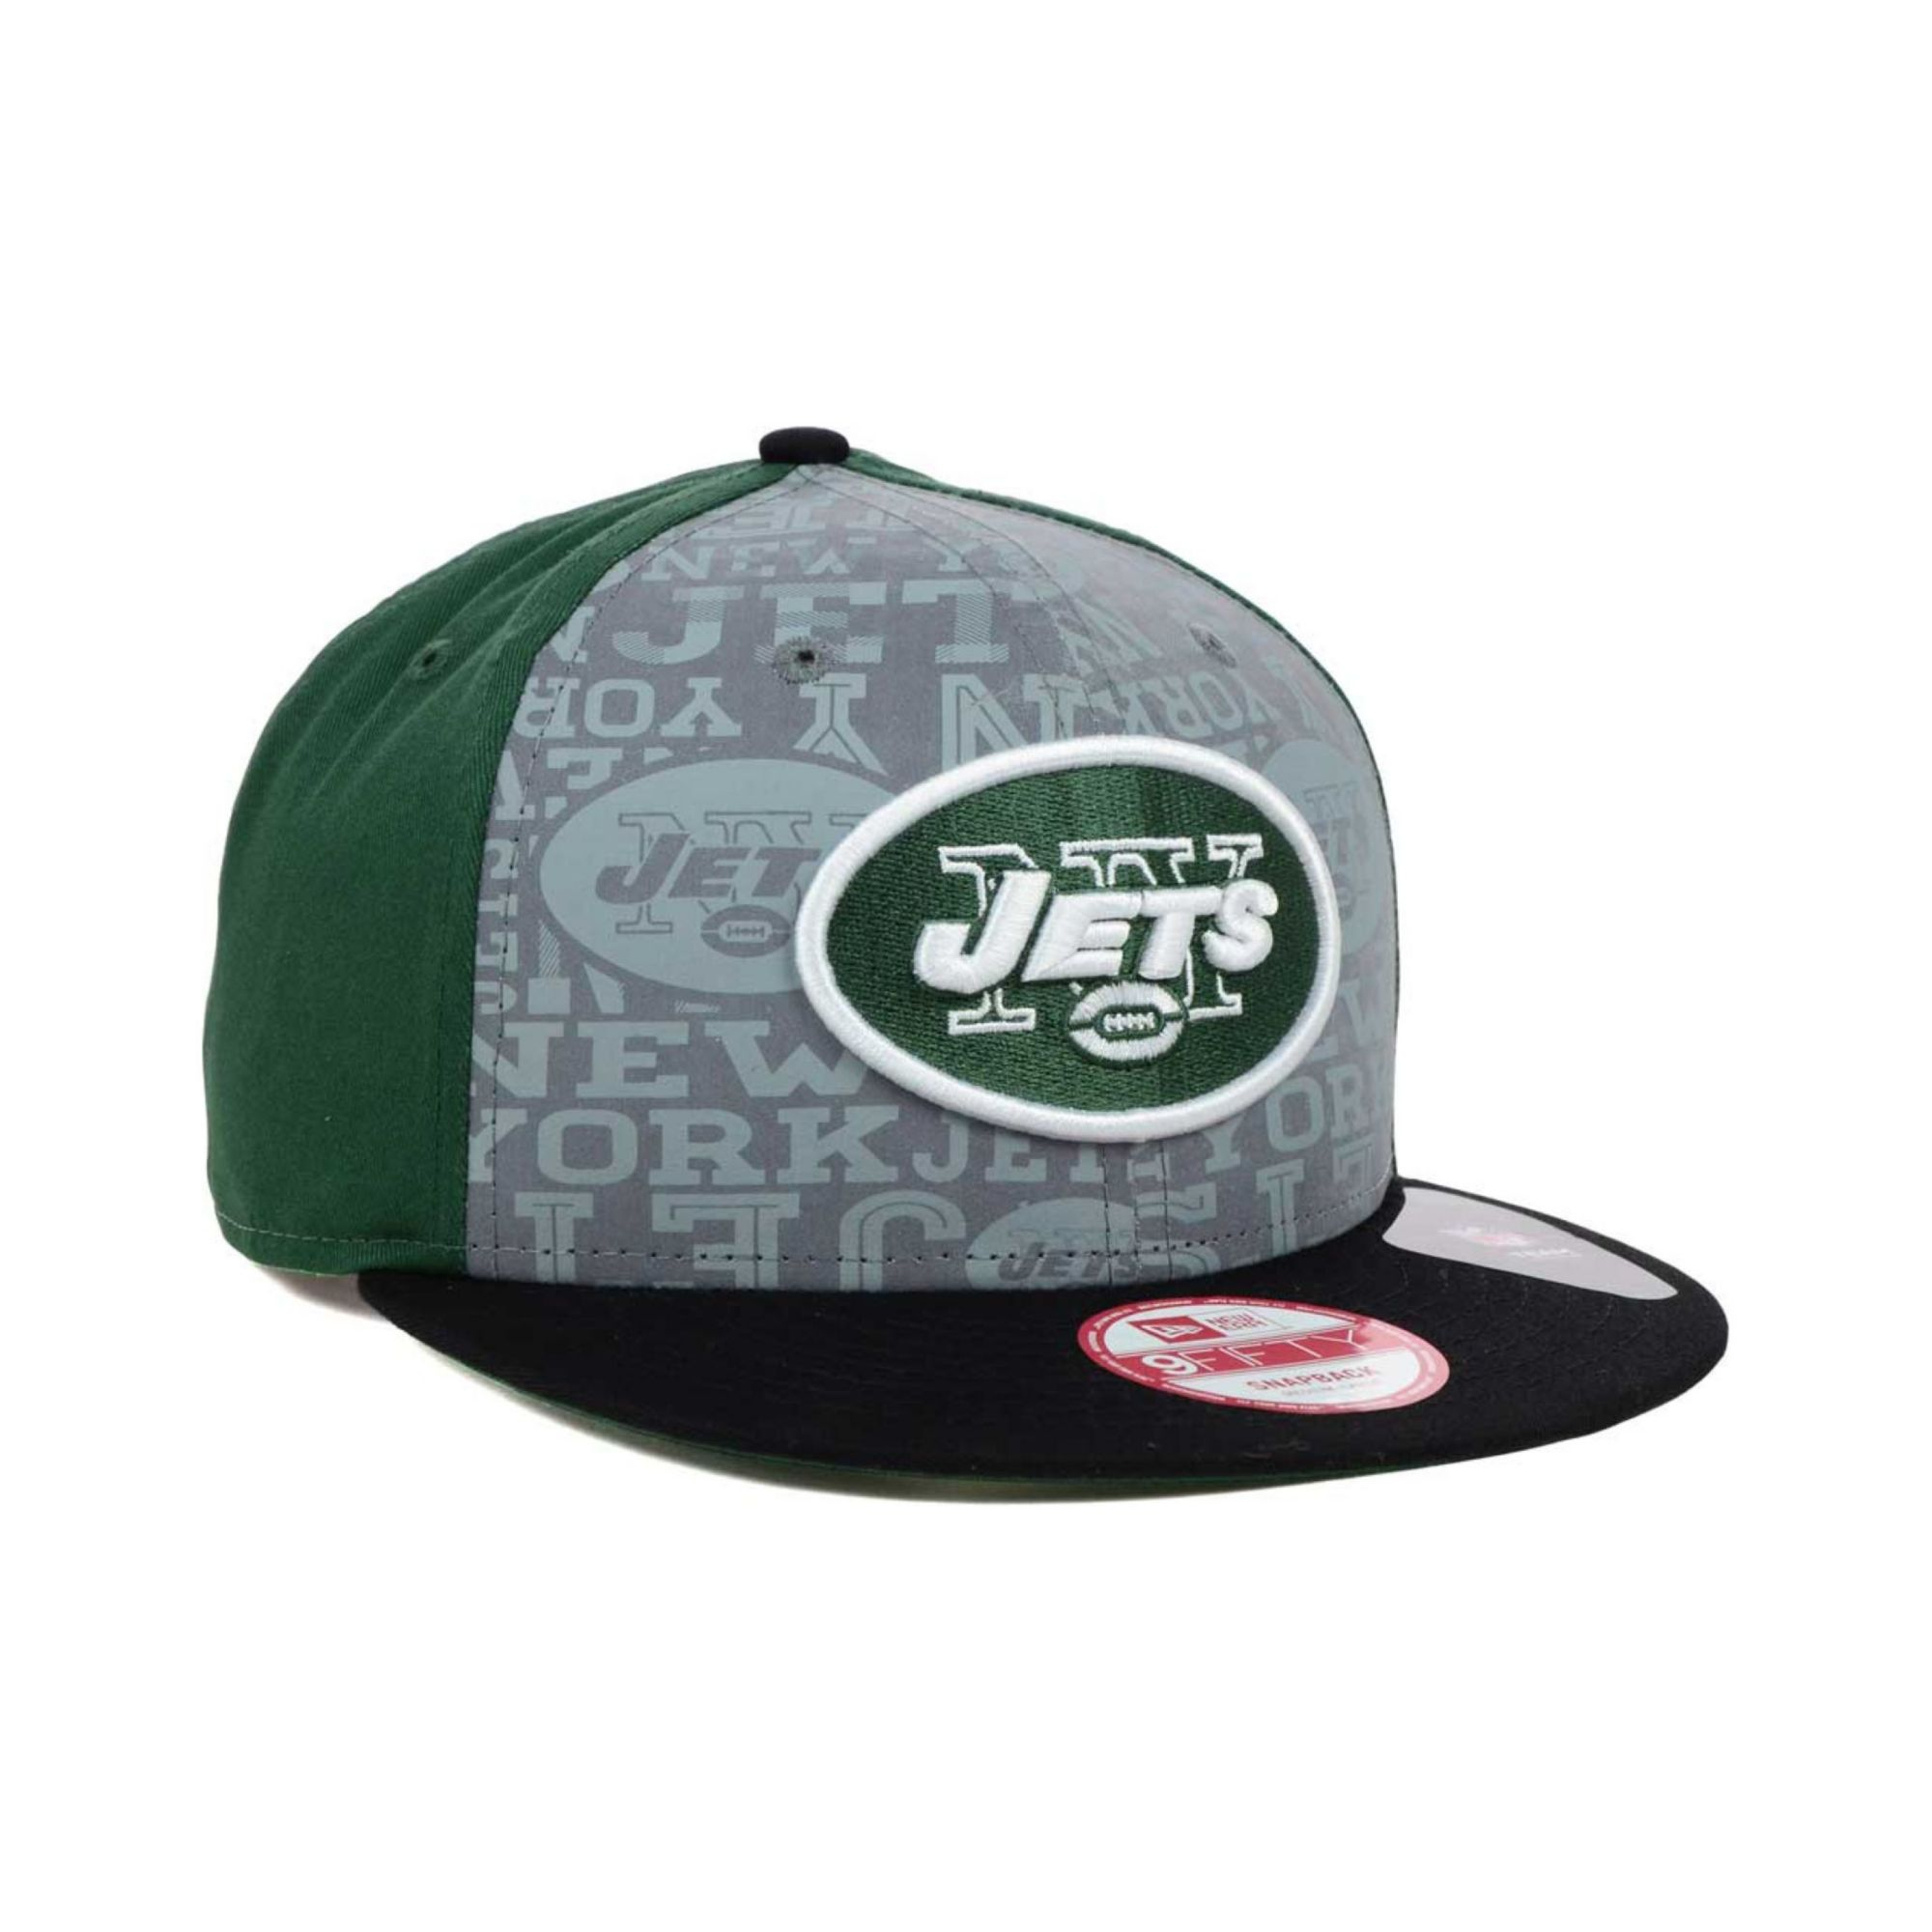 ... get lyst ktz new york jets nfl draft 9fifty snapback cap in green for  men 6fa6f 84cdab427